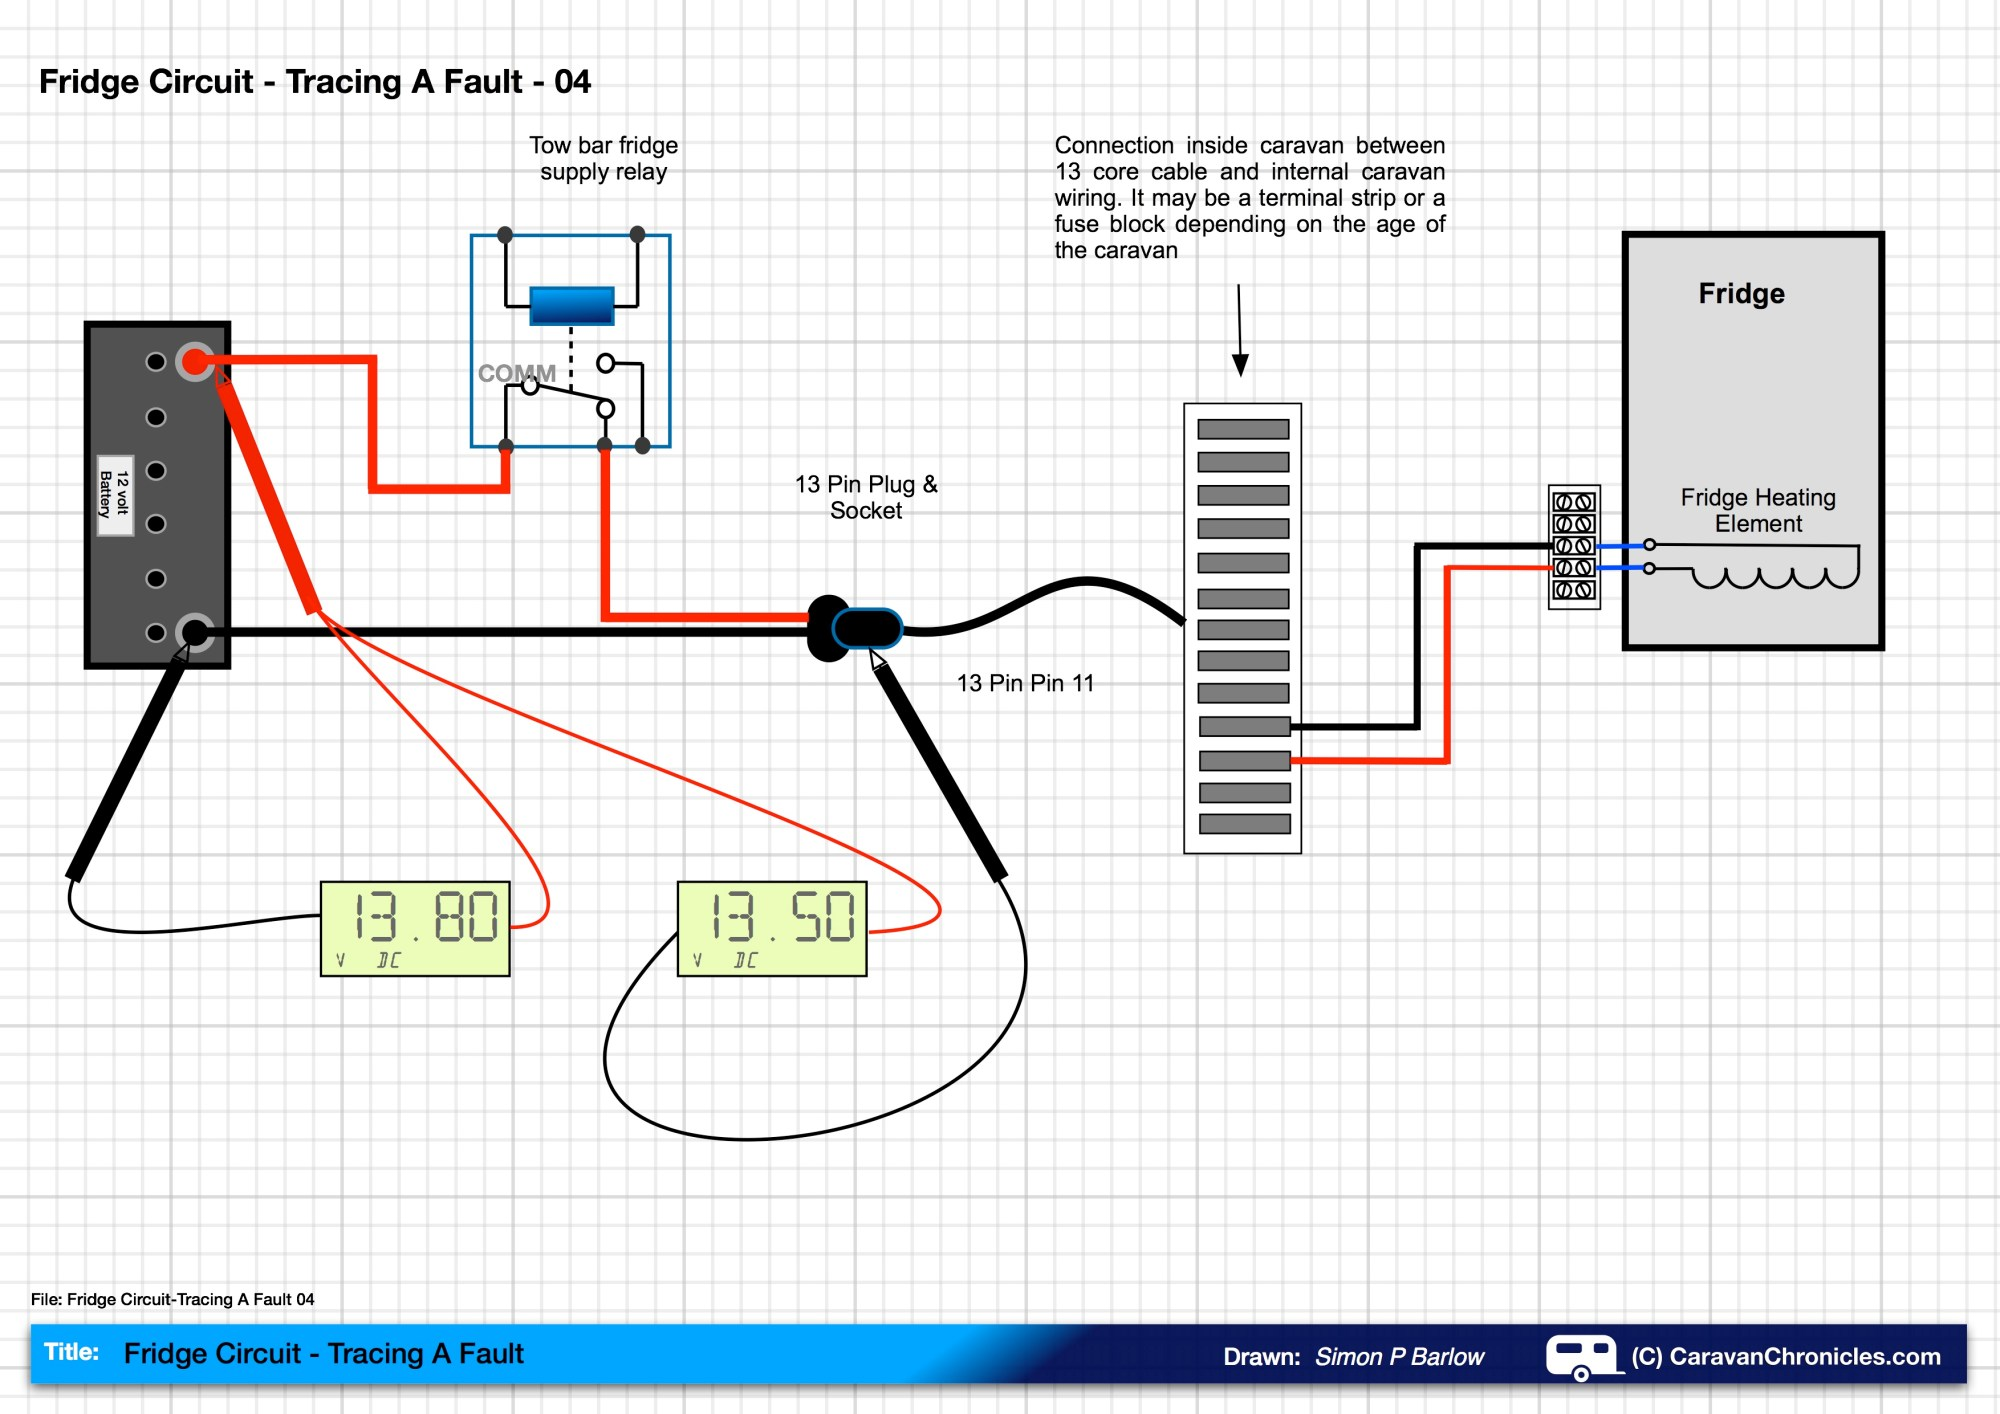 hight resolution of fridge circuit tracing a fault 04